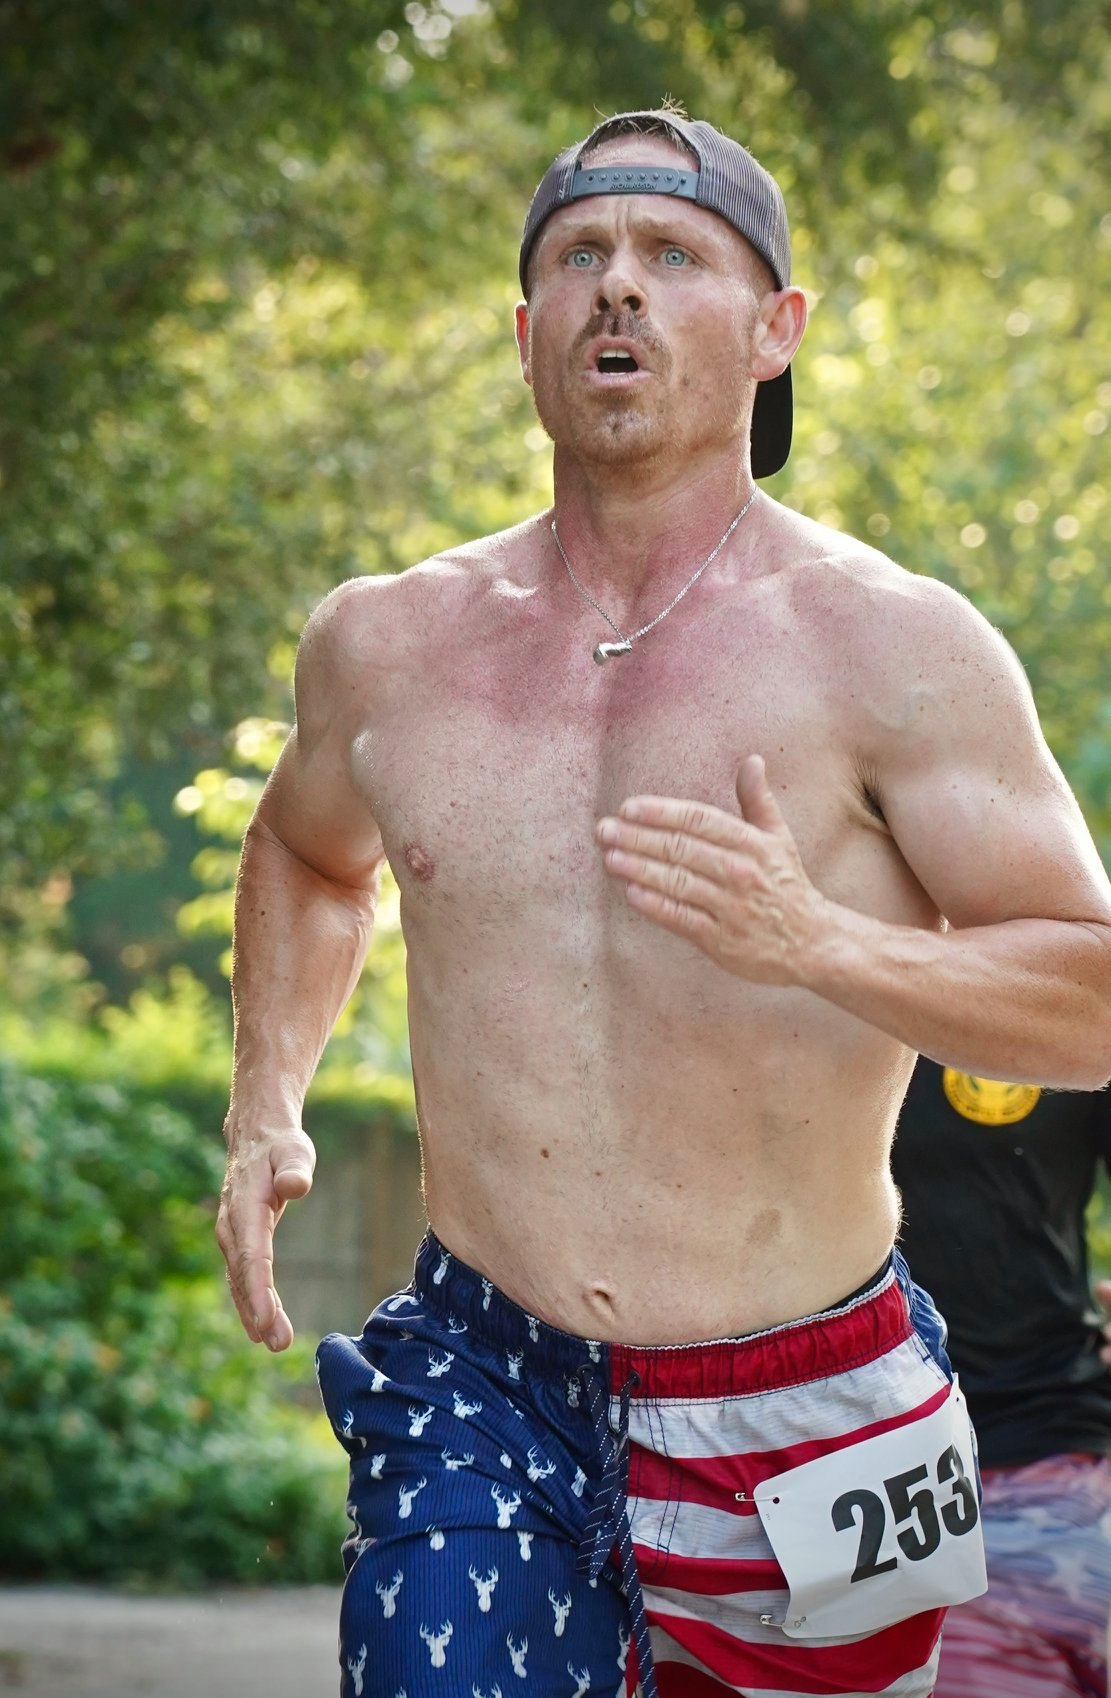 Nate, 1st Annual Independence Day 5k